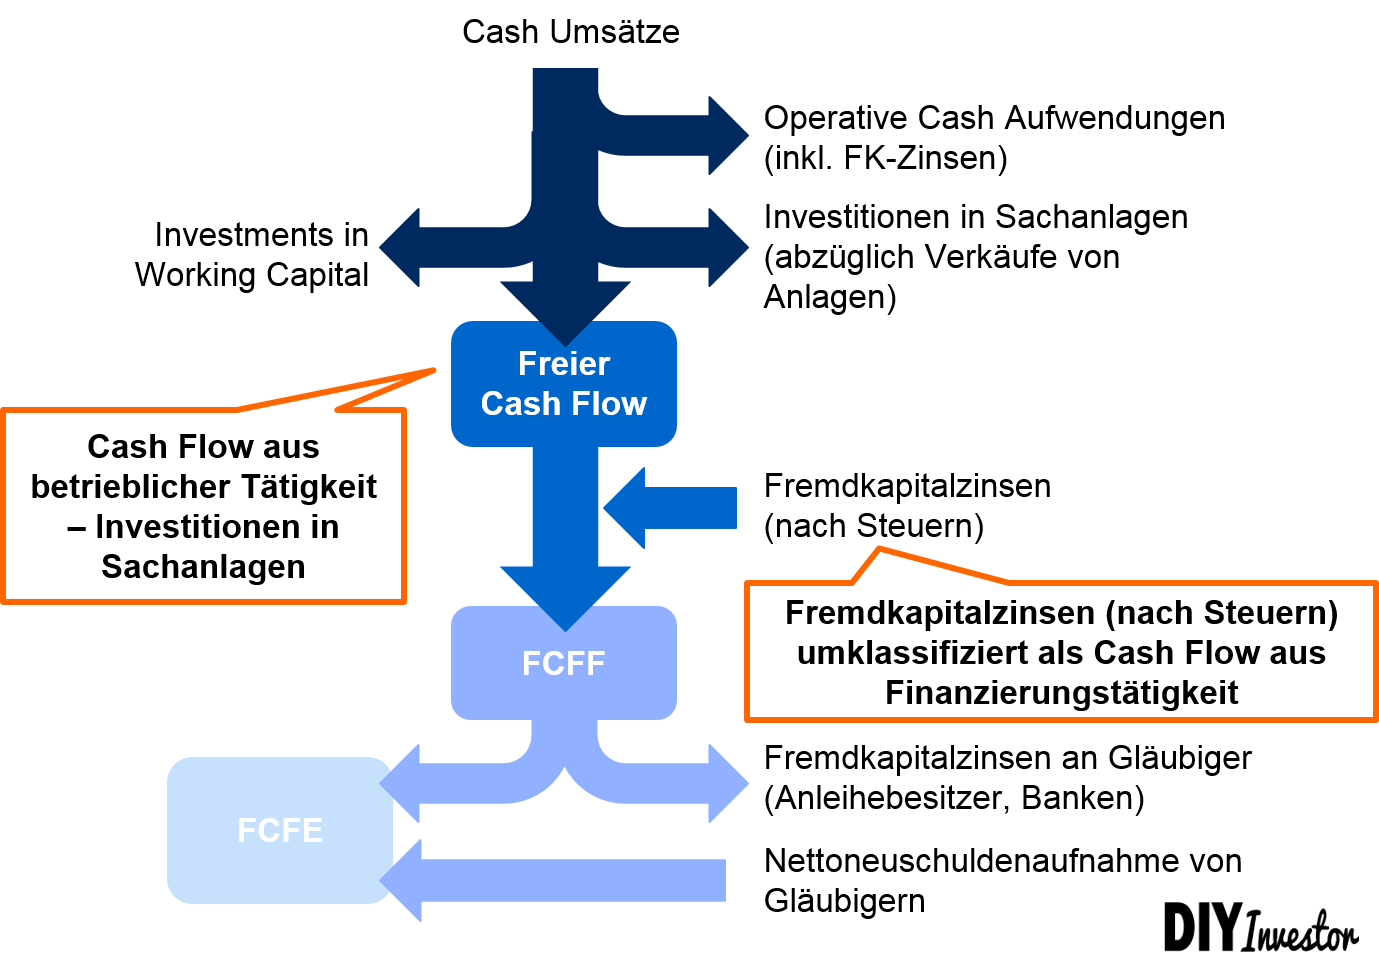 free-cash-flow-definitionen - Discounted Cash Flow DCF